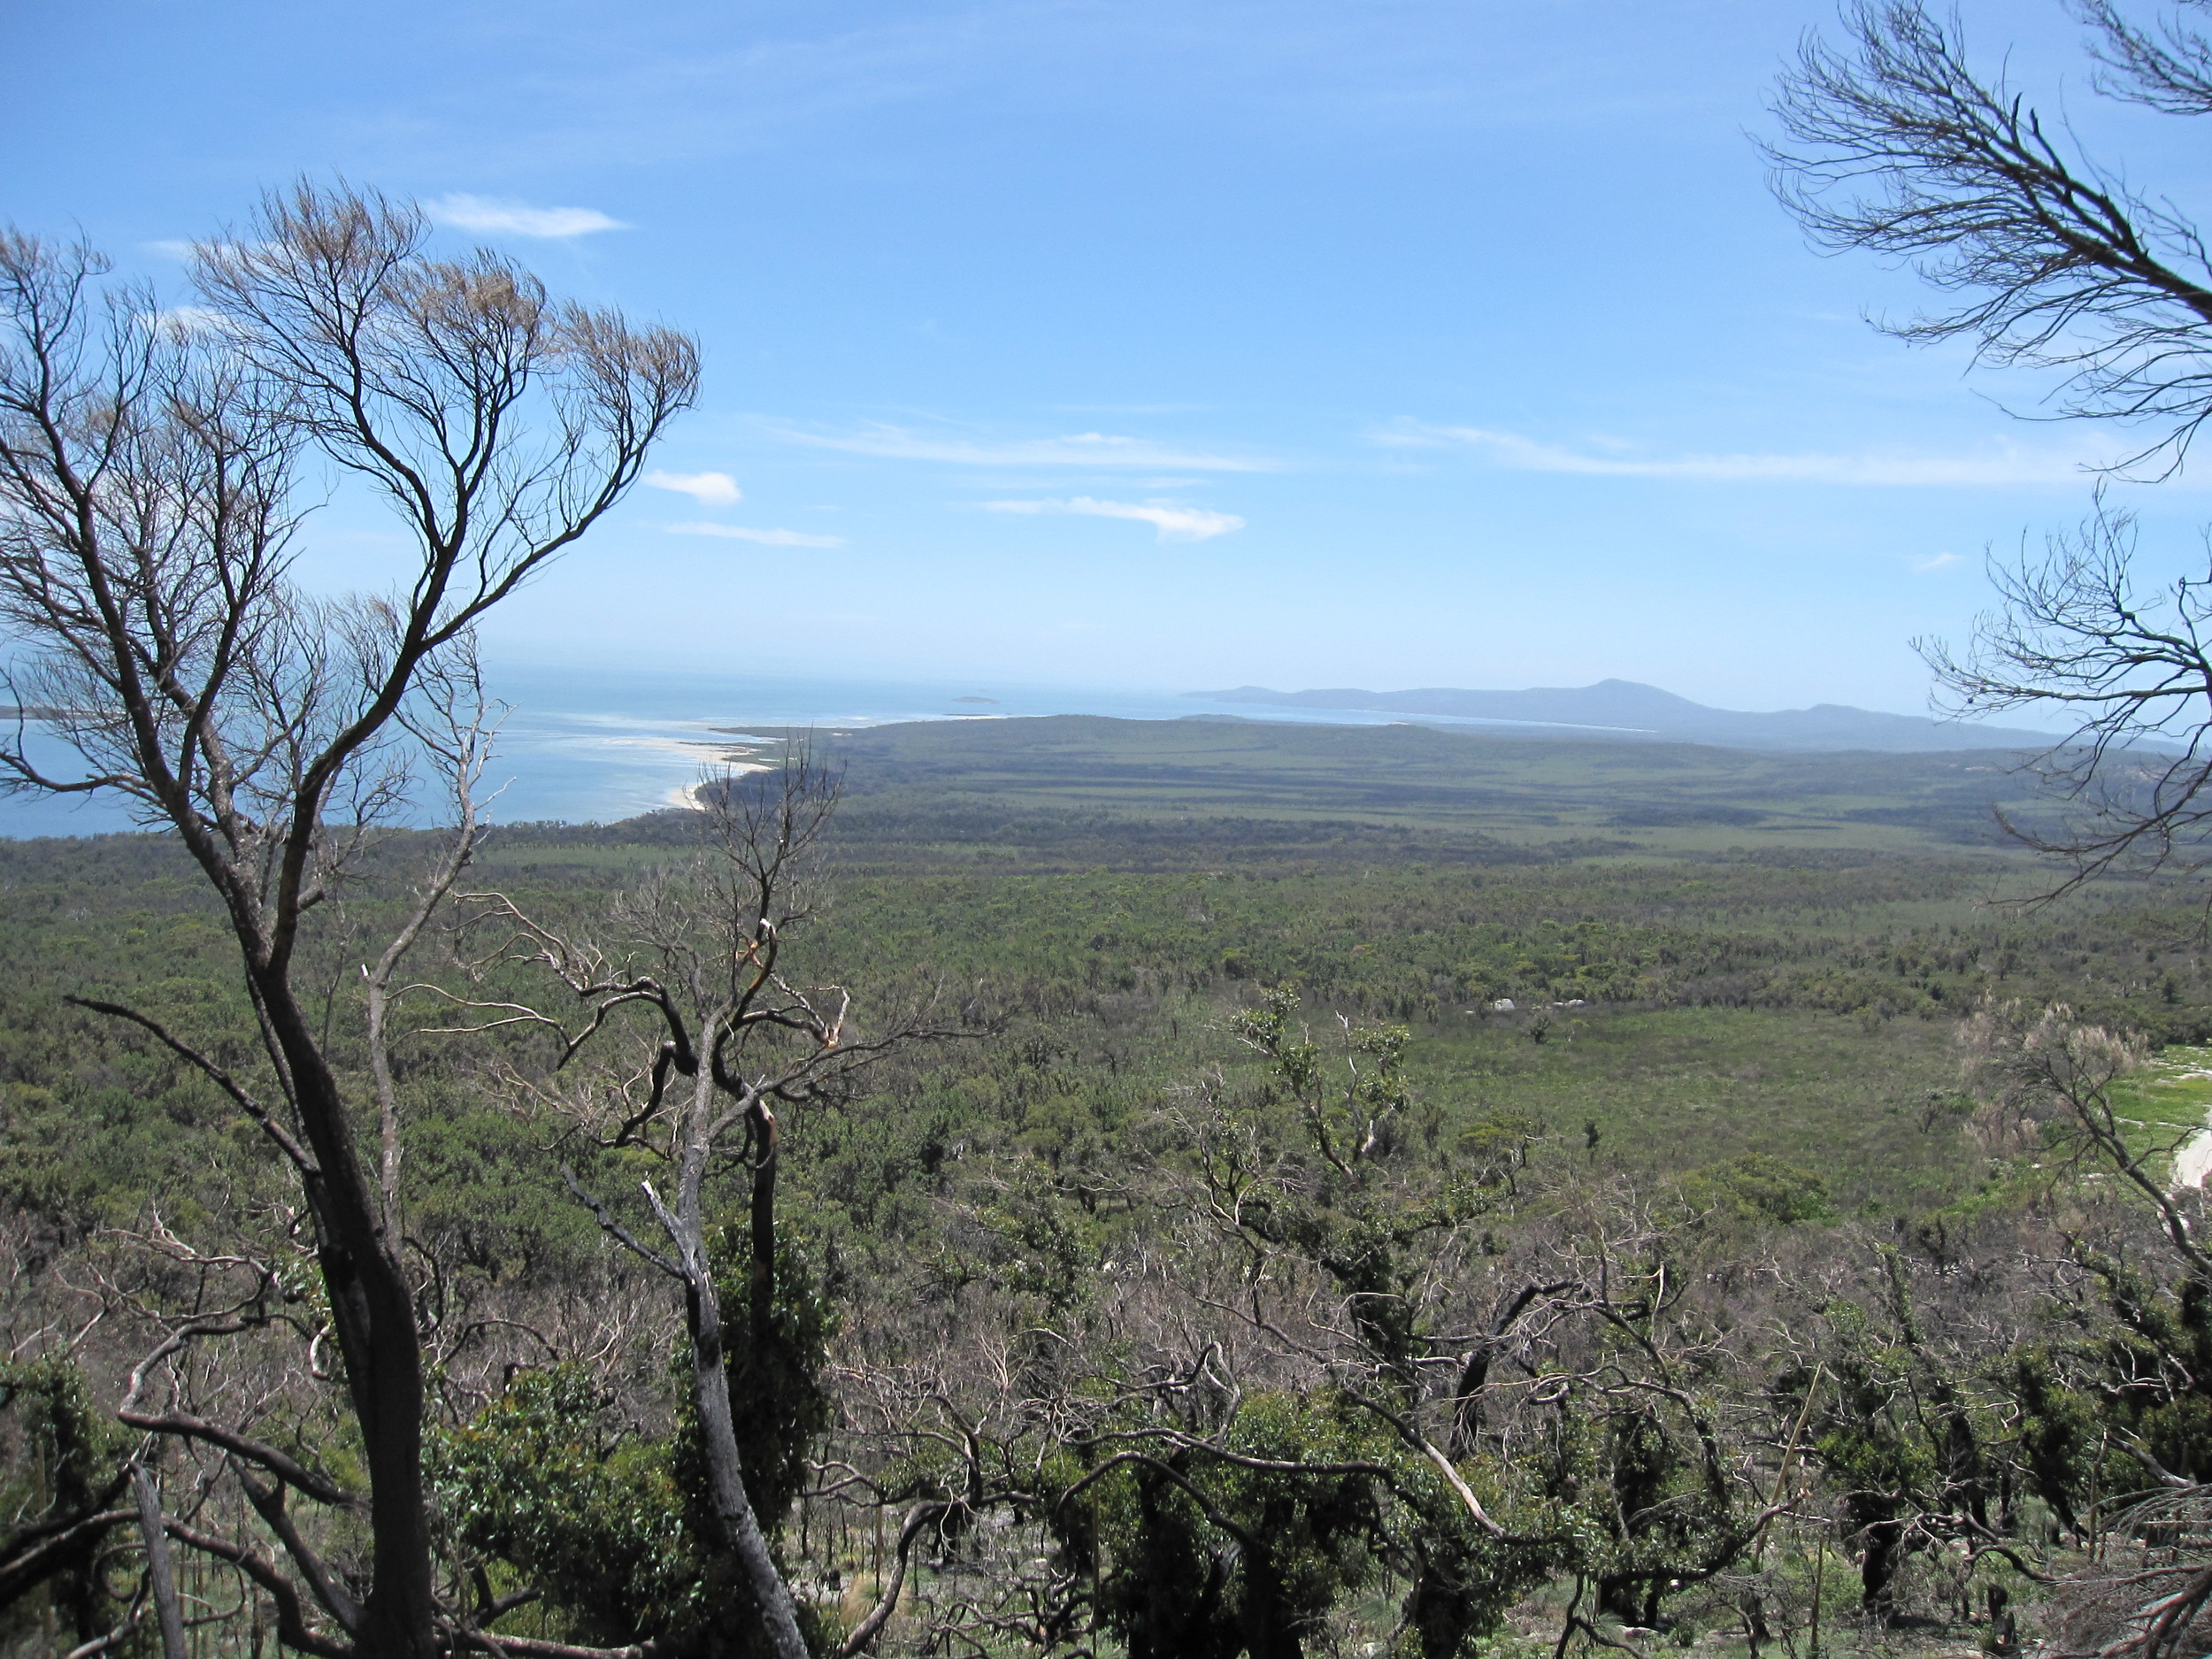 Distant Coastal View from Wilsons Prom